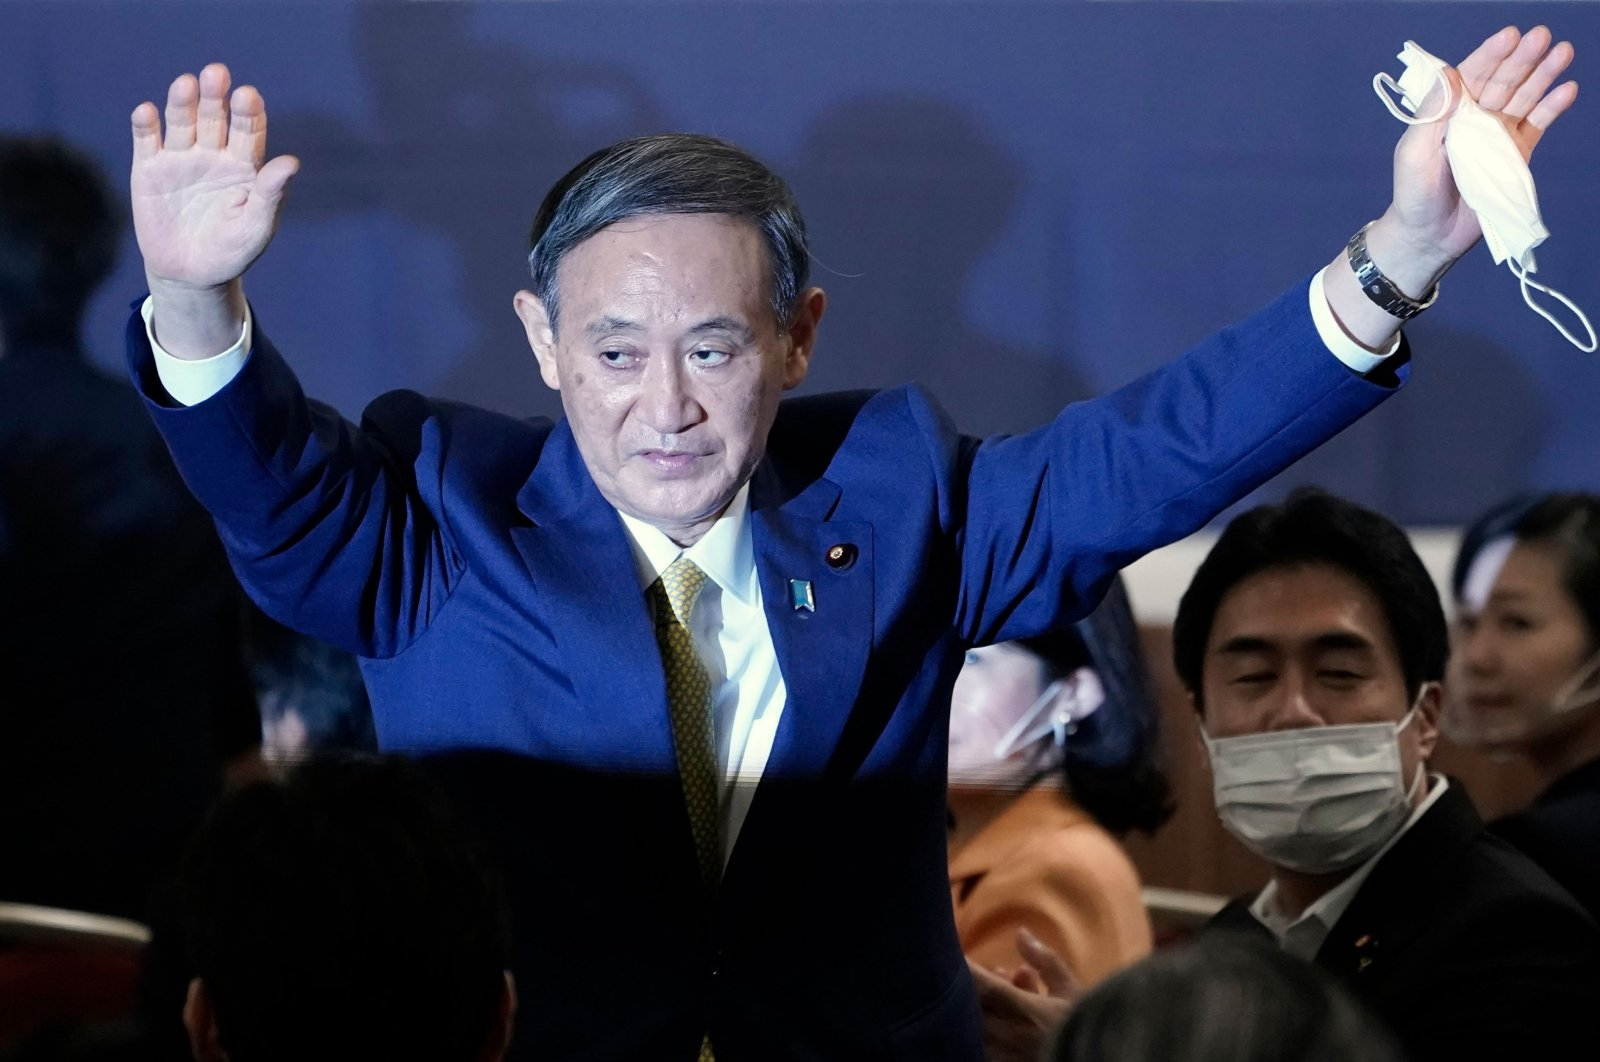 Japan's Chief Cabinet Secretary Yoshihide Suga reacts after being elected as new head of Japan's ruling Liberal Democratic Party (LDP) at the party's leadership election in Tokyo on Sept. 14, 2020.(AFP Photo)